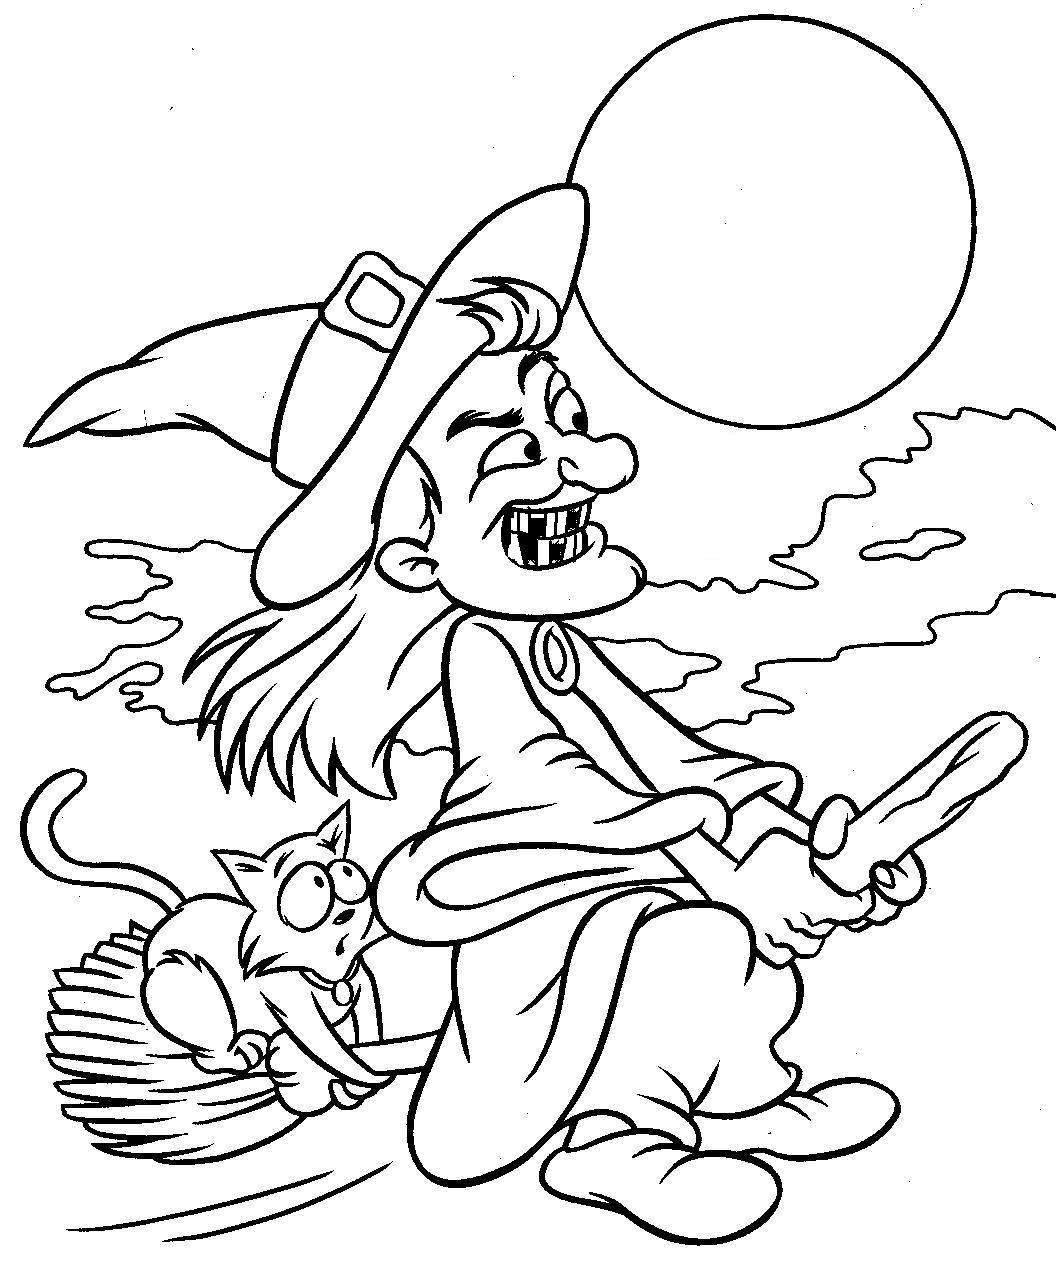 witch flying on broom coloring page